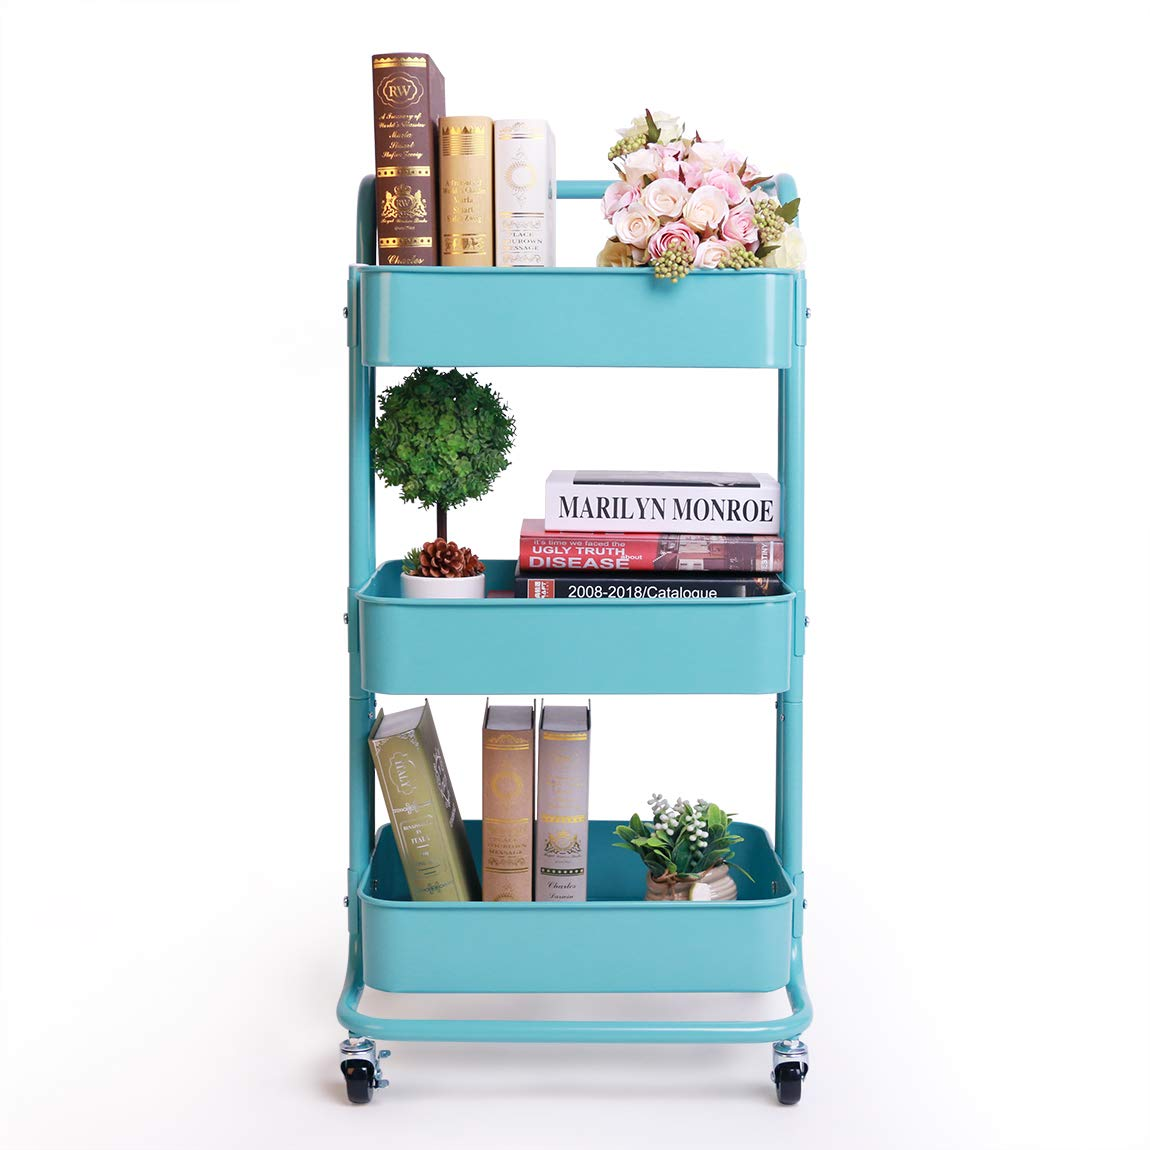 SZAT PRO 3-Tier Metal Rolling Utility Cart with Handles Turquoise